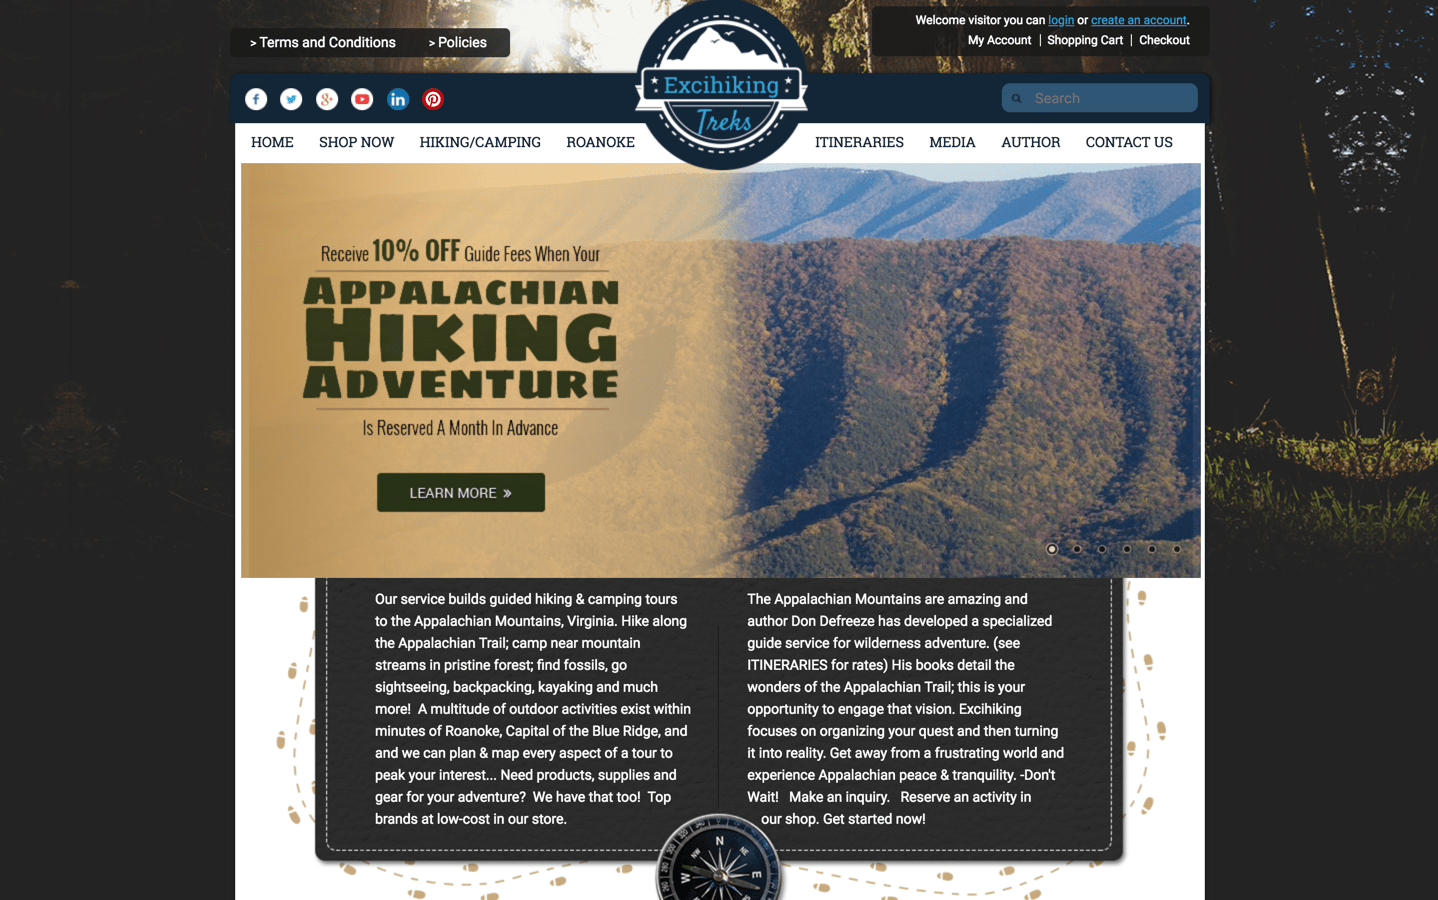 excihiking website